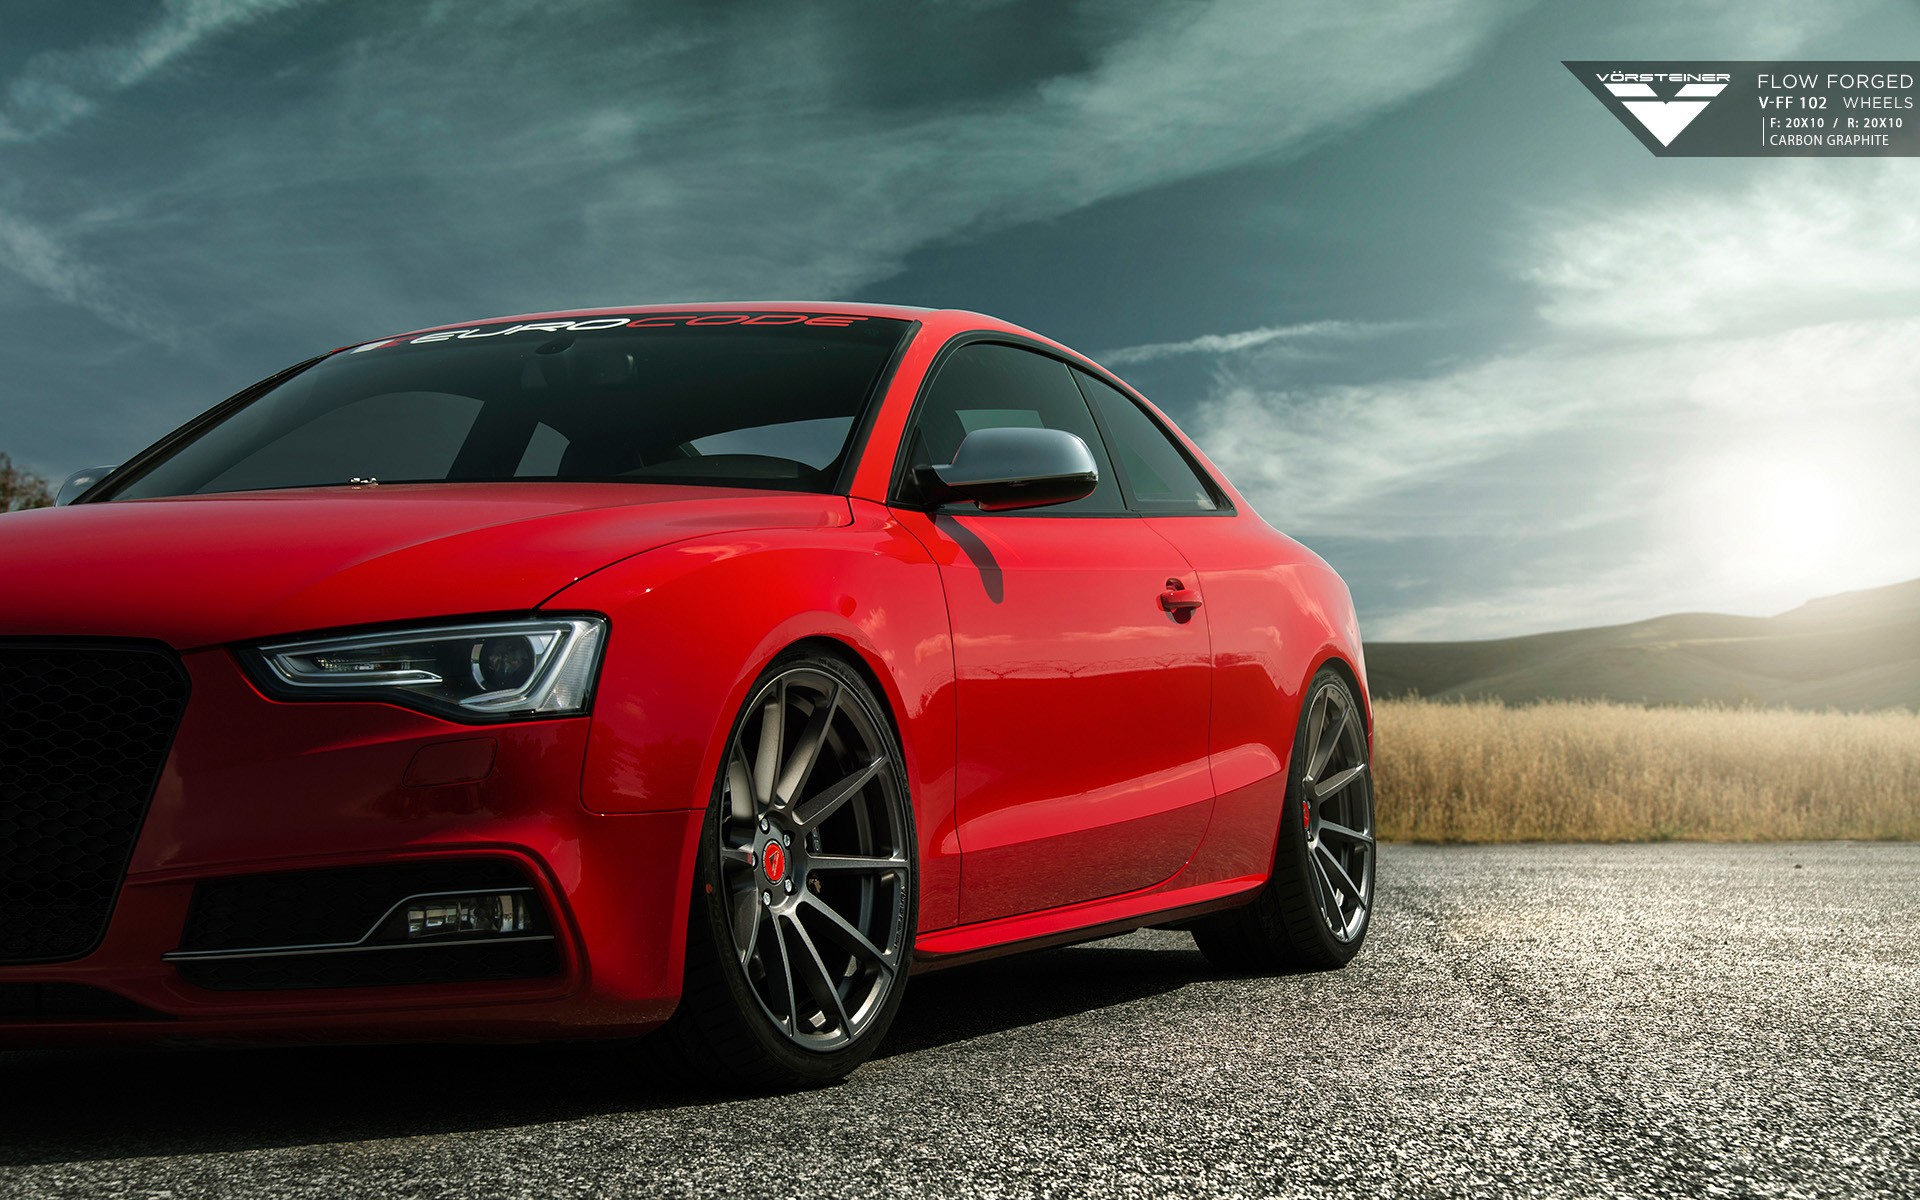 2015 vorsteiner audi s5 v ff 3 wallpaper hd car wallpapers id 5497 - Car wallpapers for galaxy s5 ...